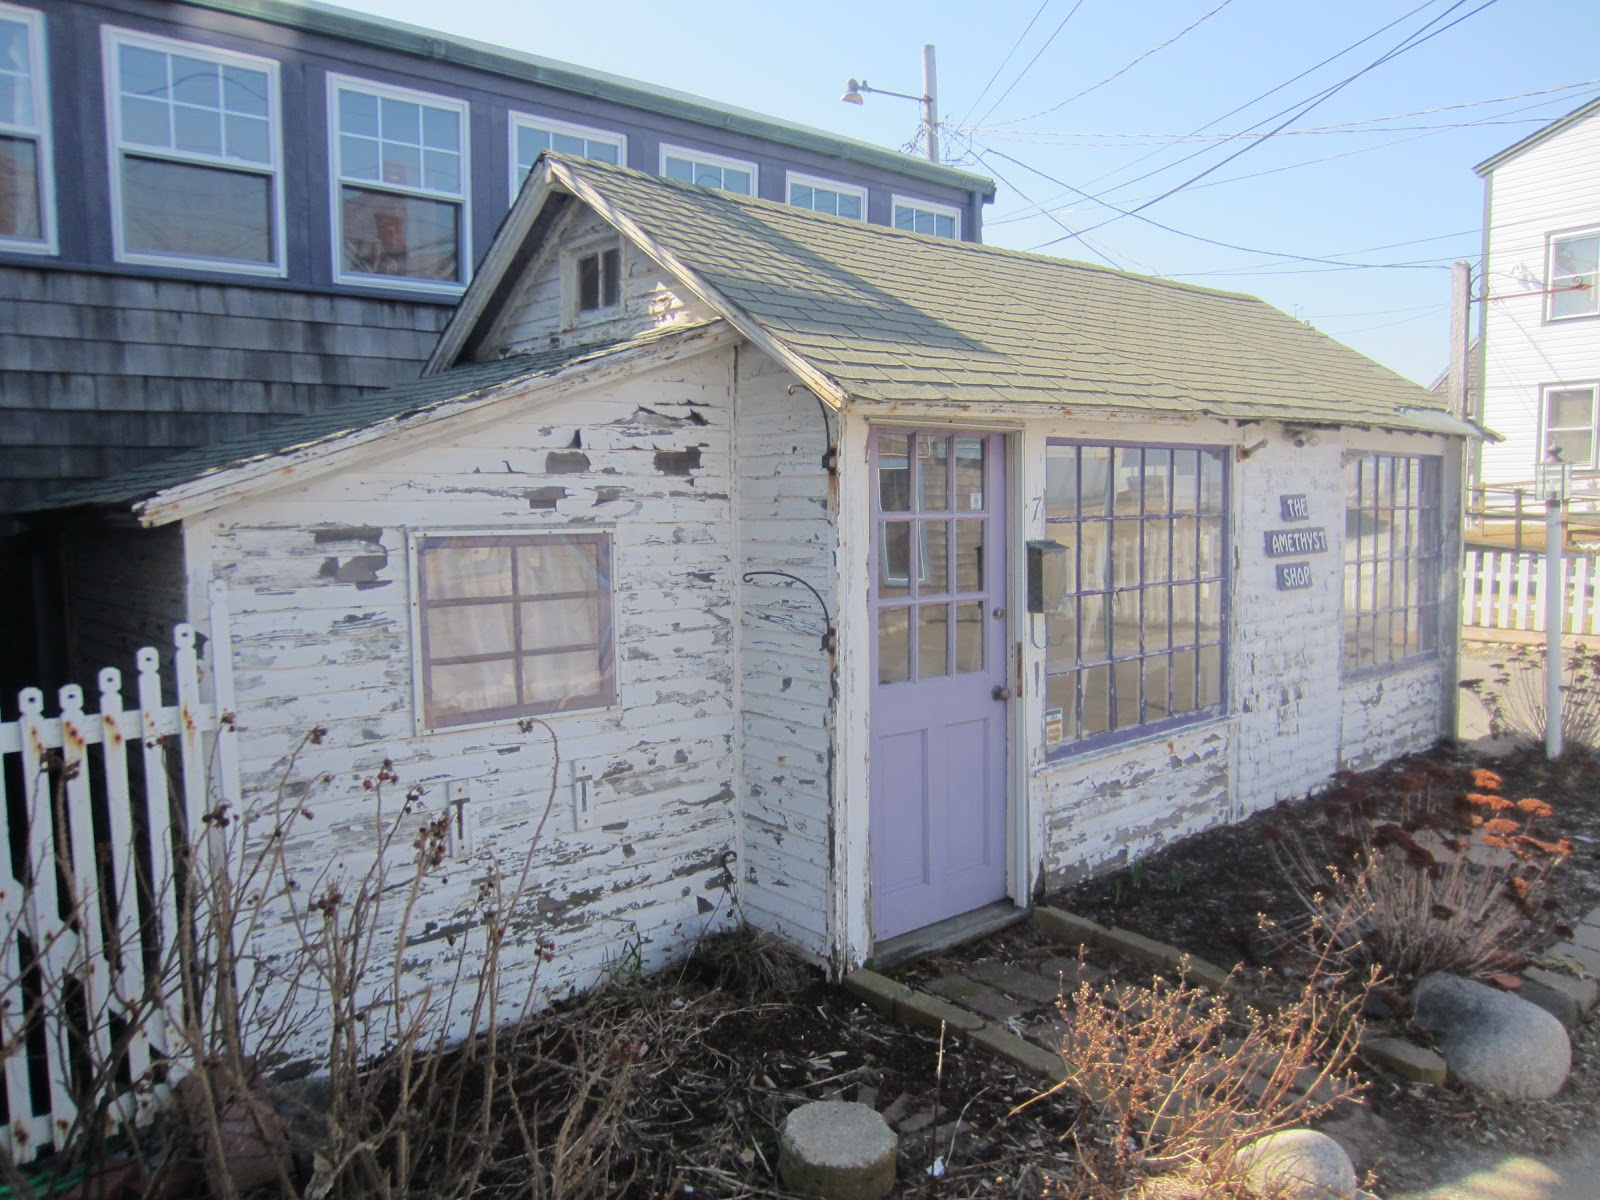 Relaxshacks.com: TEN Really Cool Tiny Houses In Rockport